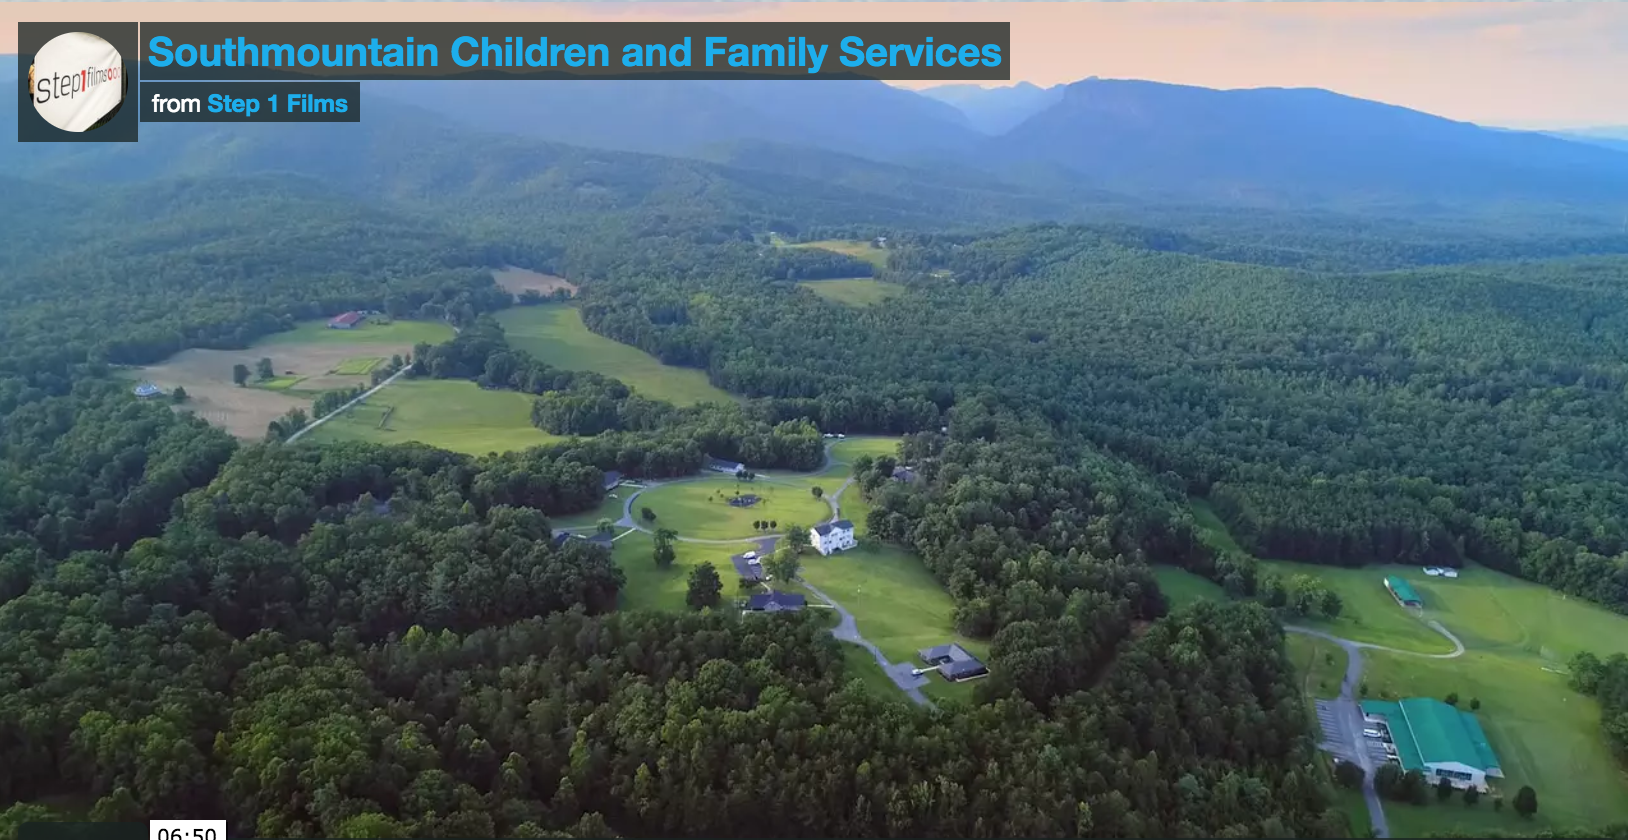 Southmountain Children and Family Services Video